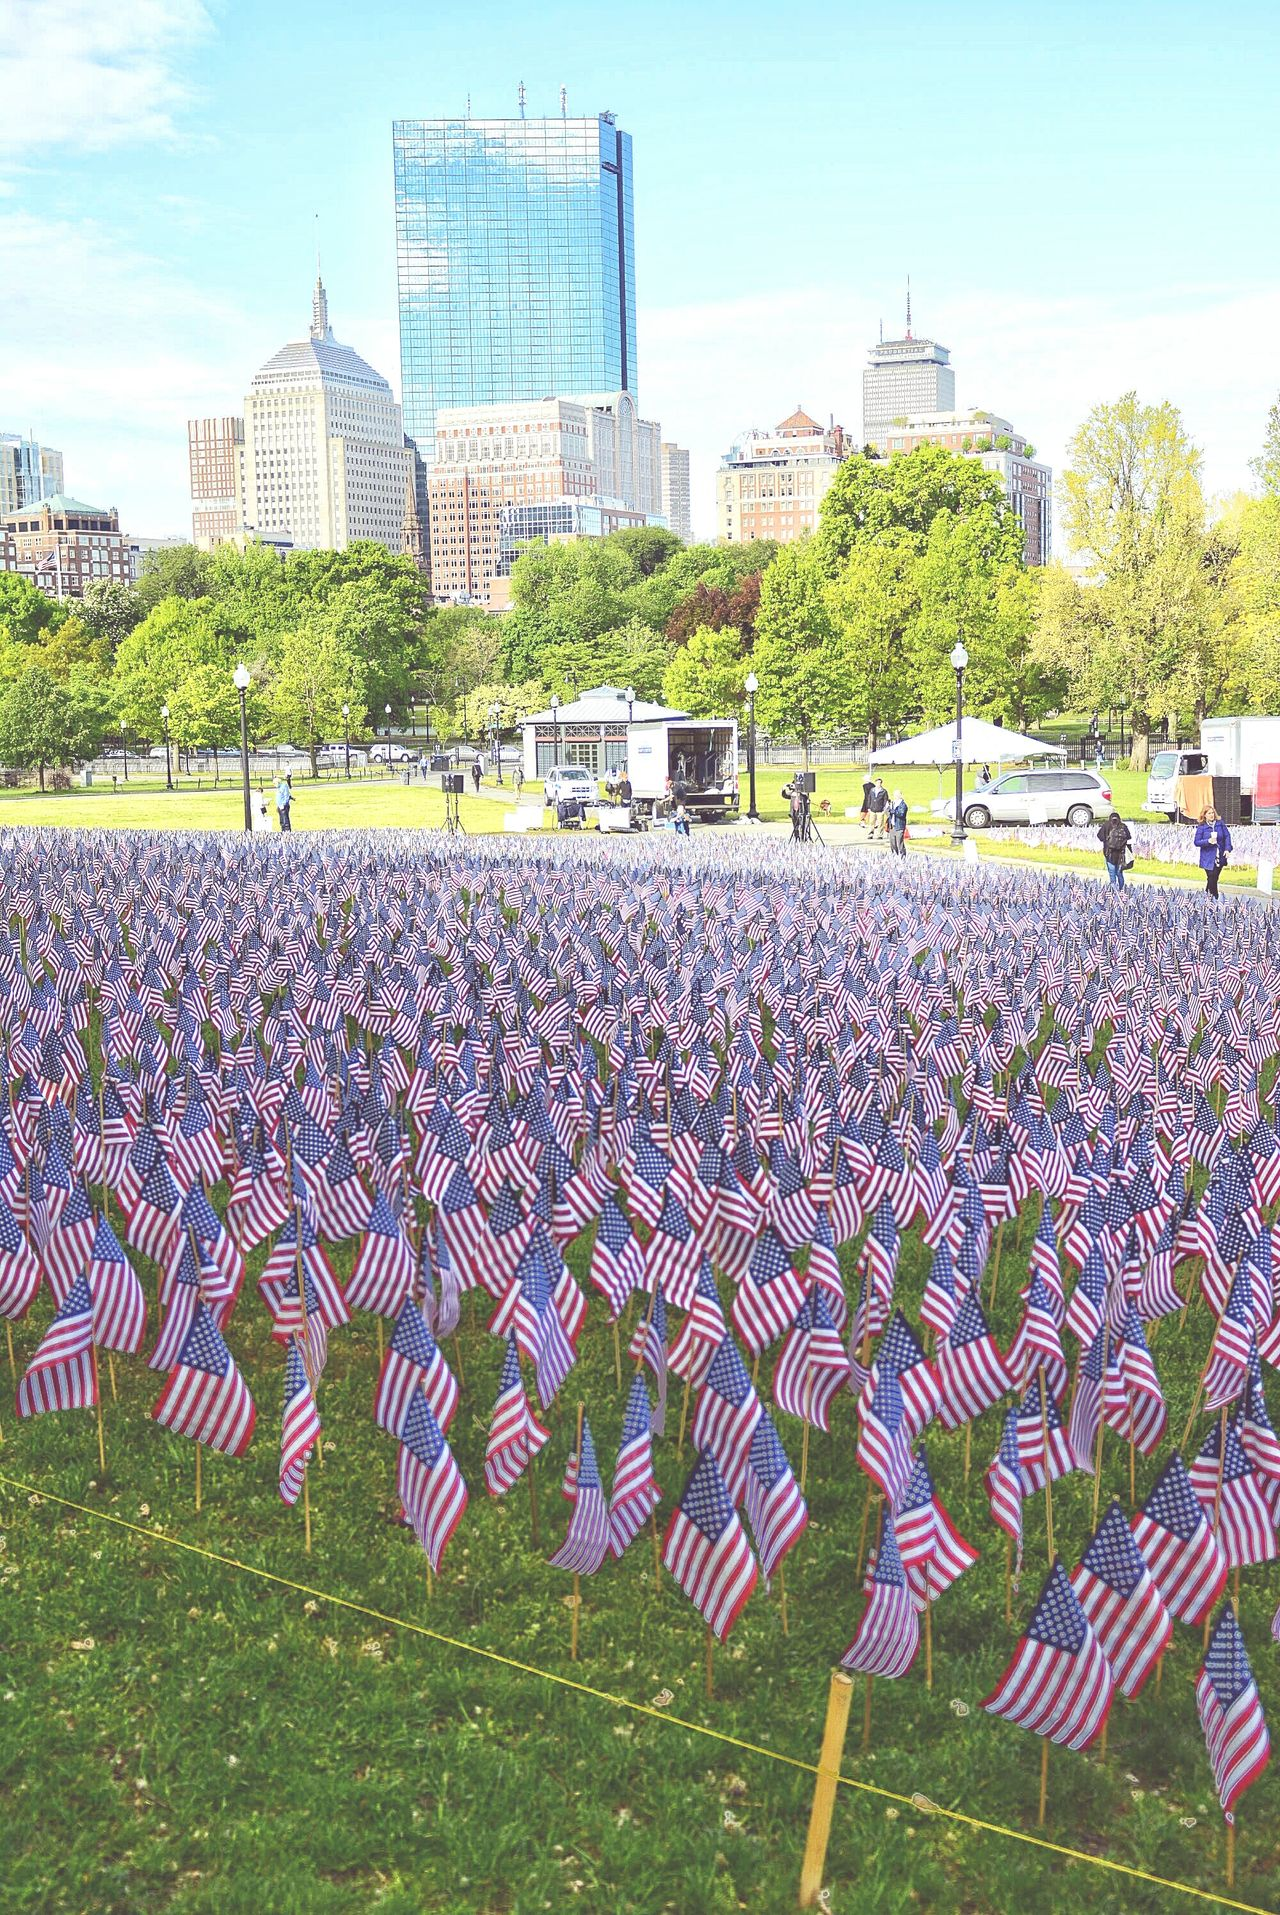 Garden Of Flags has been planted in Boston Common Memorial Day Remembrance